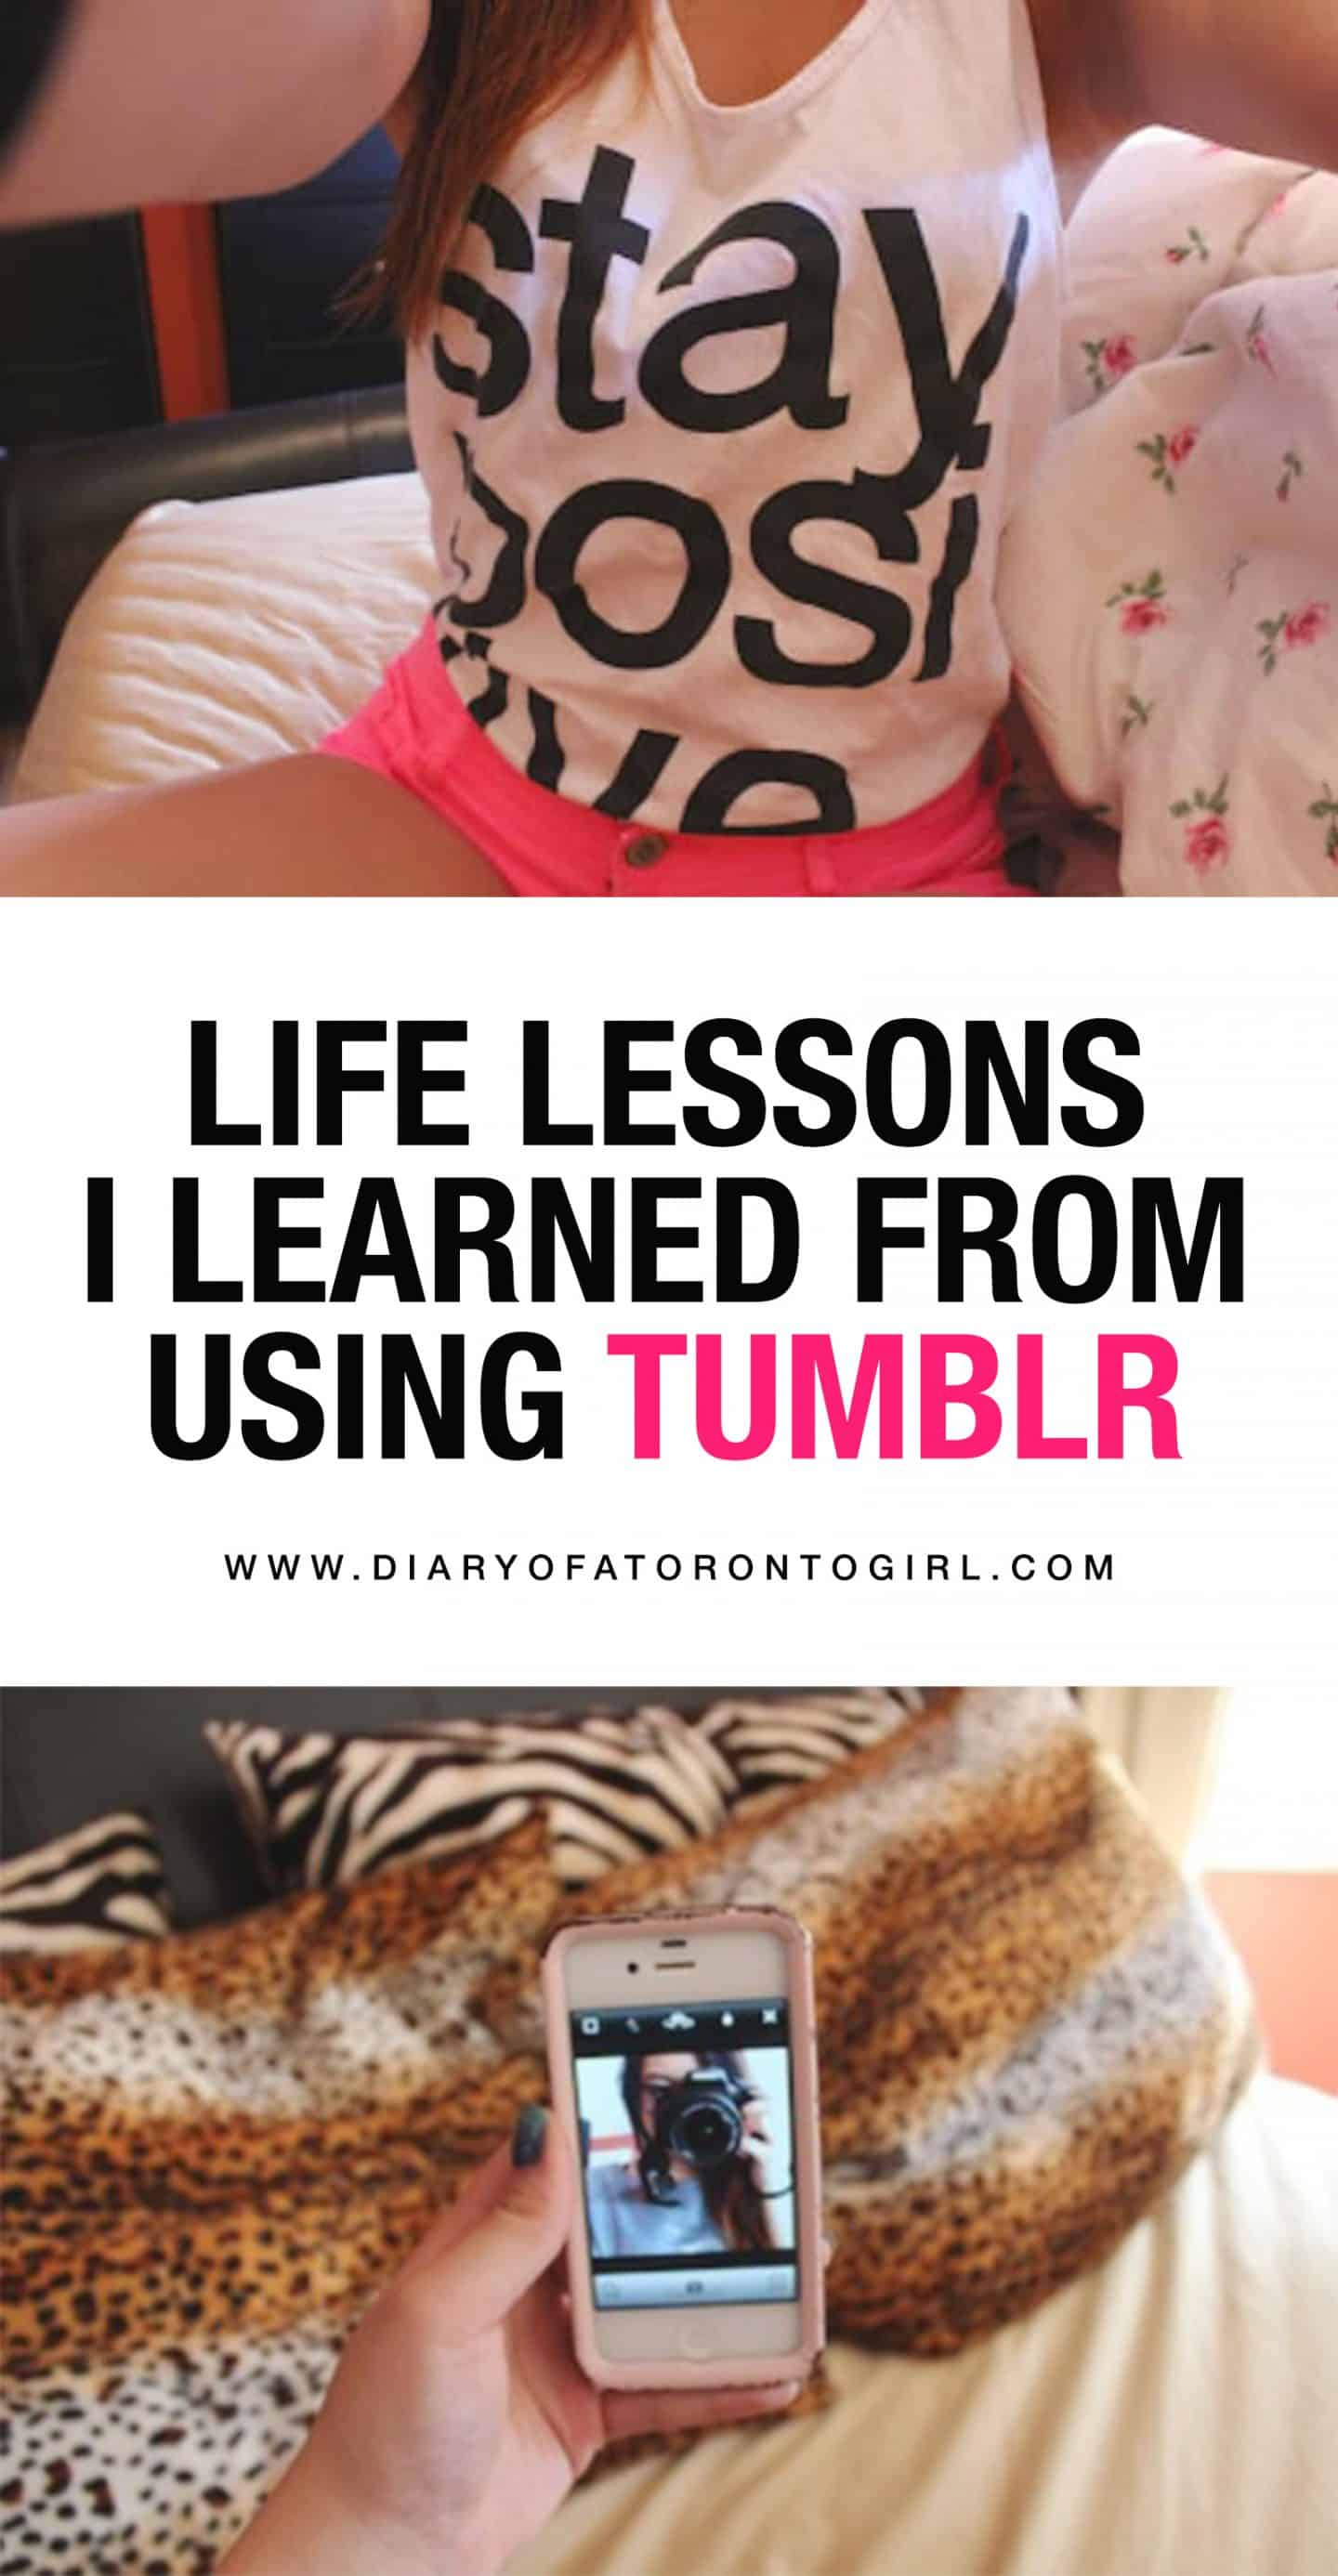 Being on Tumblr taught me life lessons I'll always carry with me. As a teen in high school, having Tumblr was like having a supportive community around you.